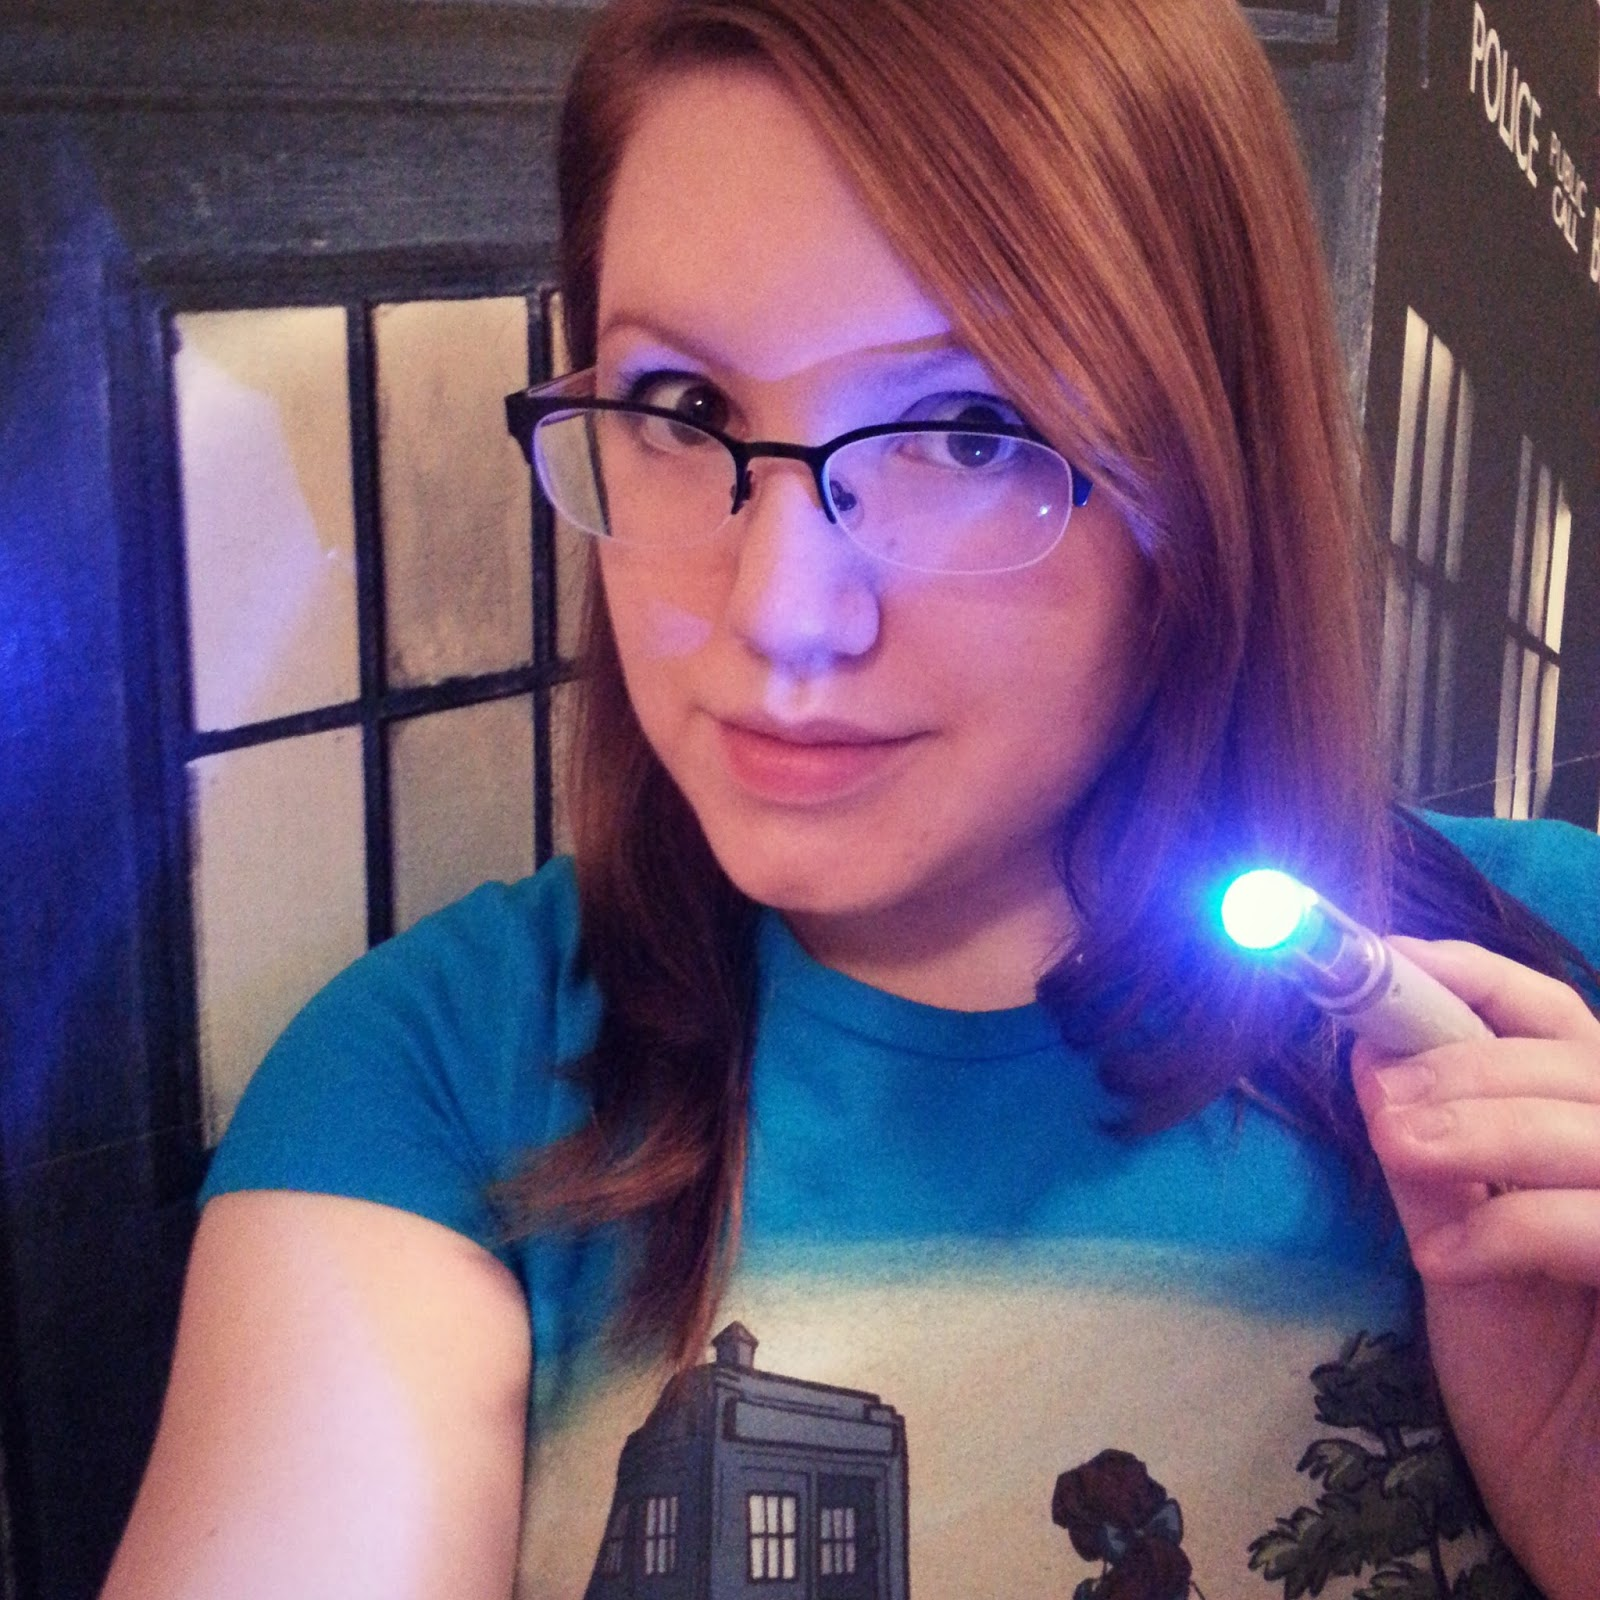 There's a TARDIS in my bedroom! (April Sprinkles)